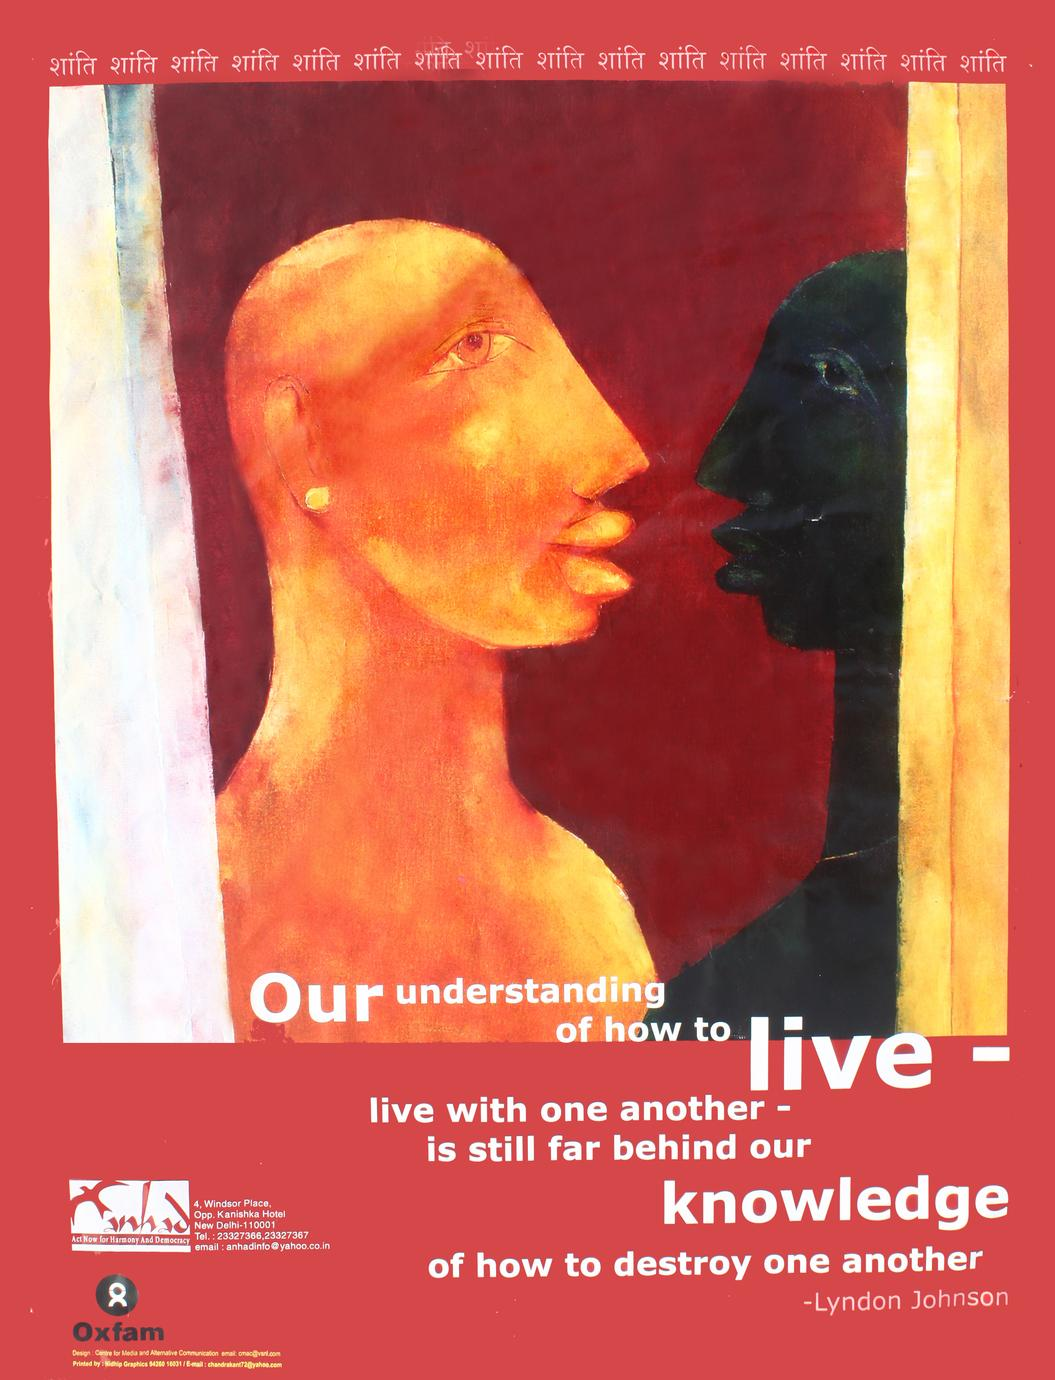 Our understanding of how to live